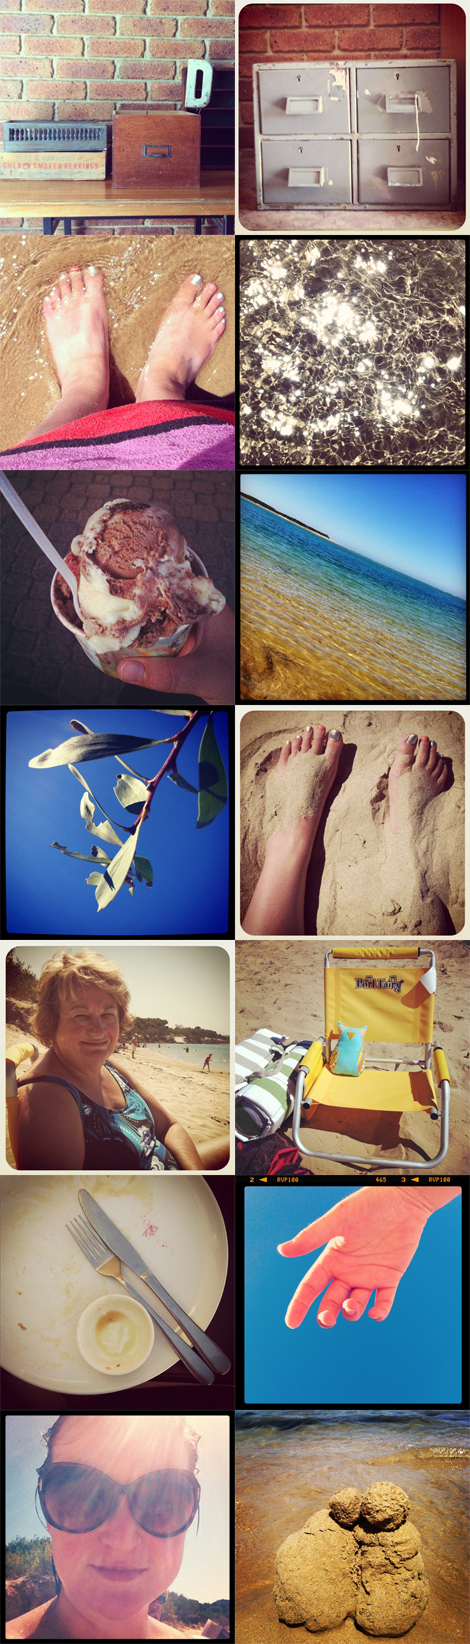 Inverloch Beach collage blog